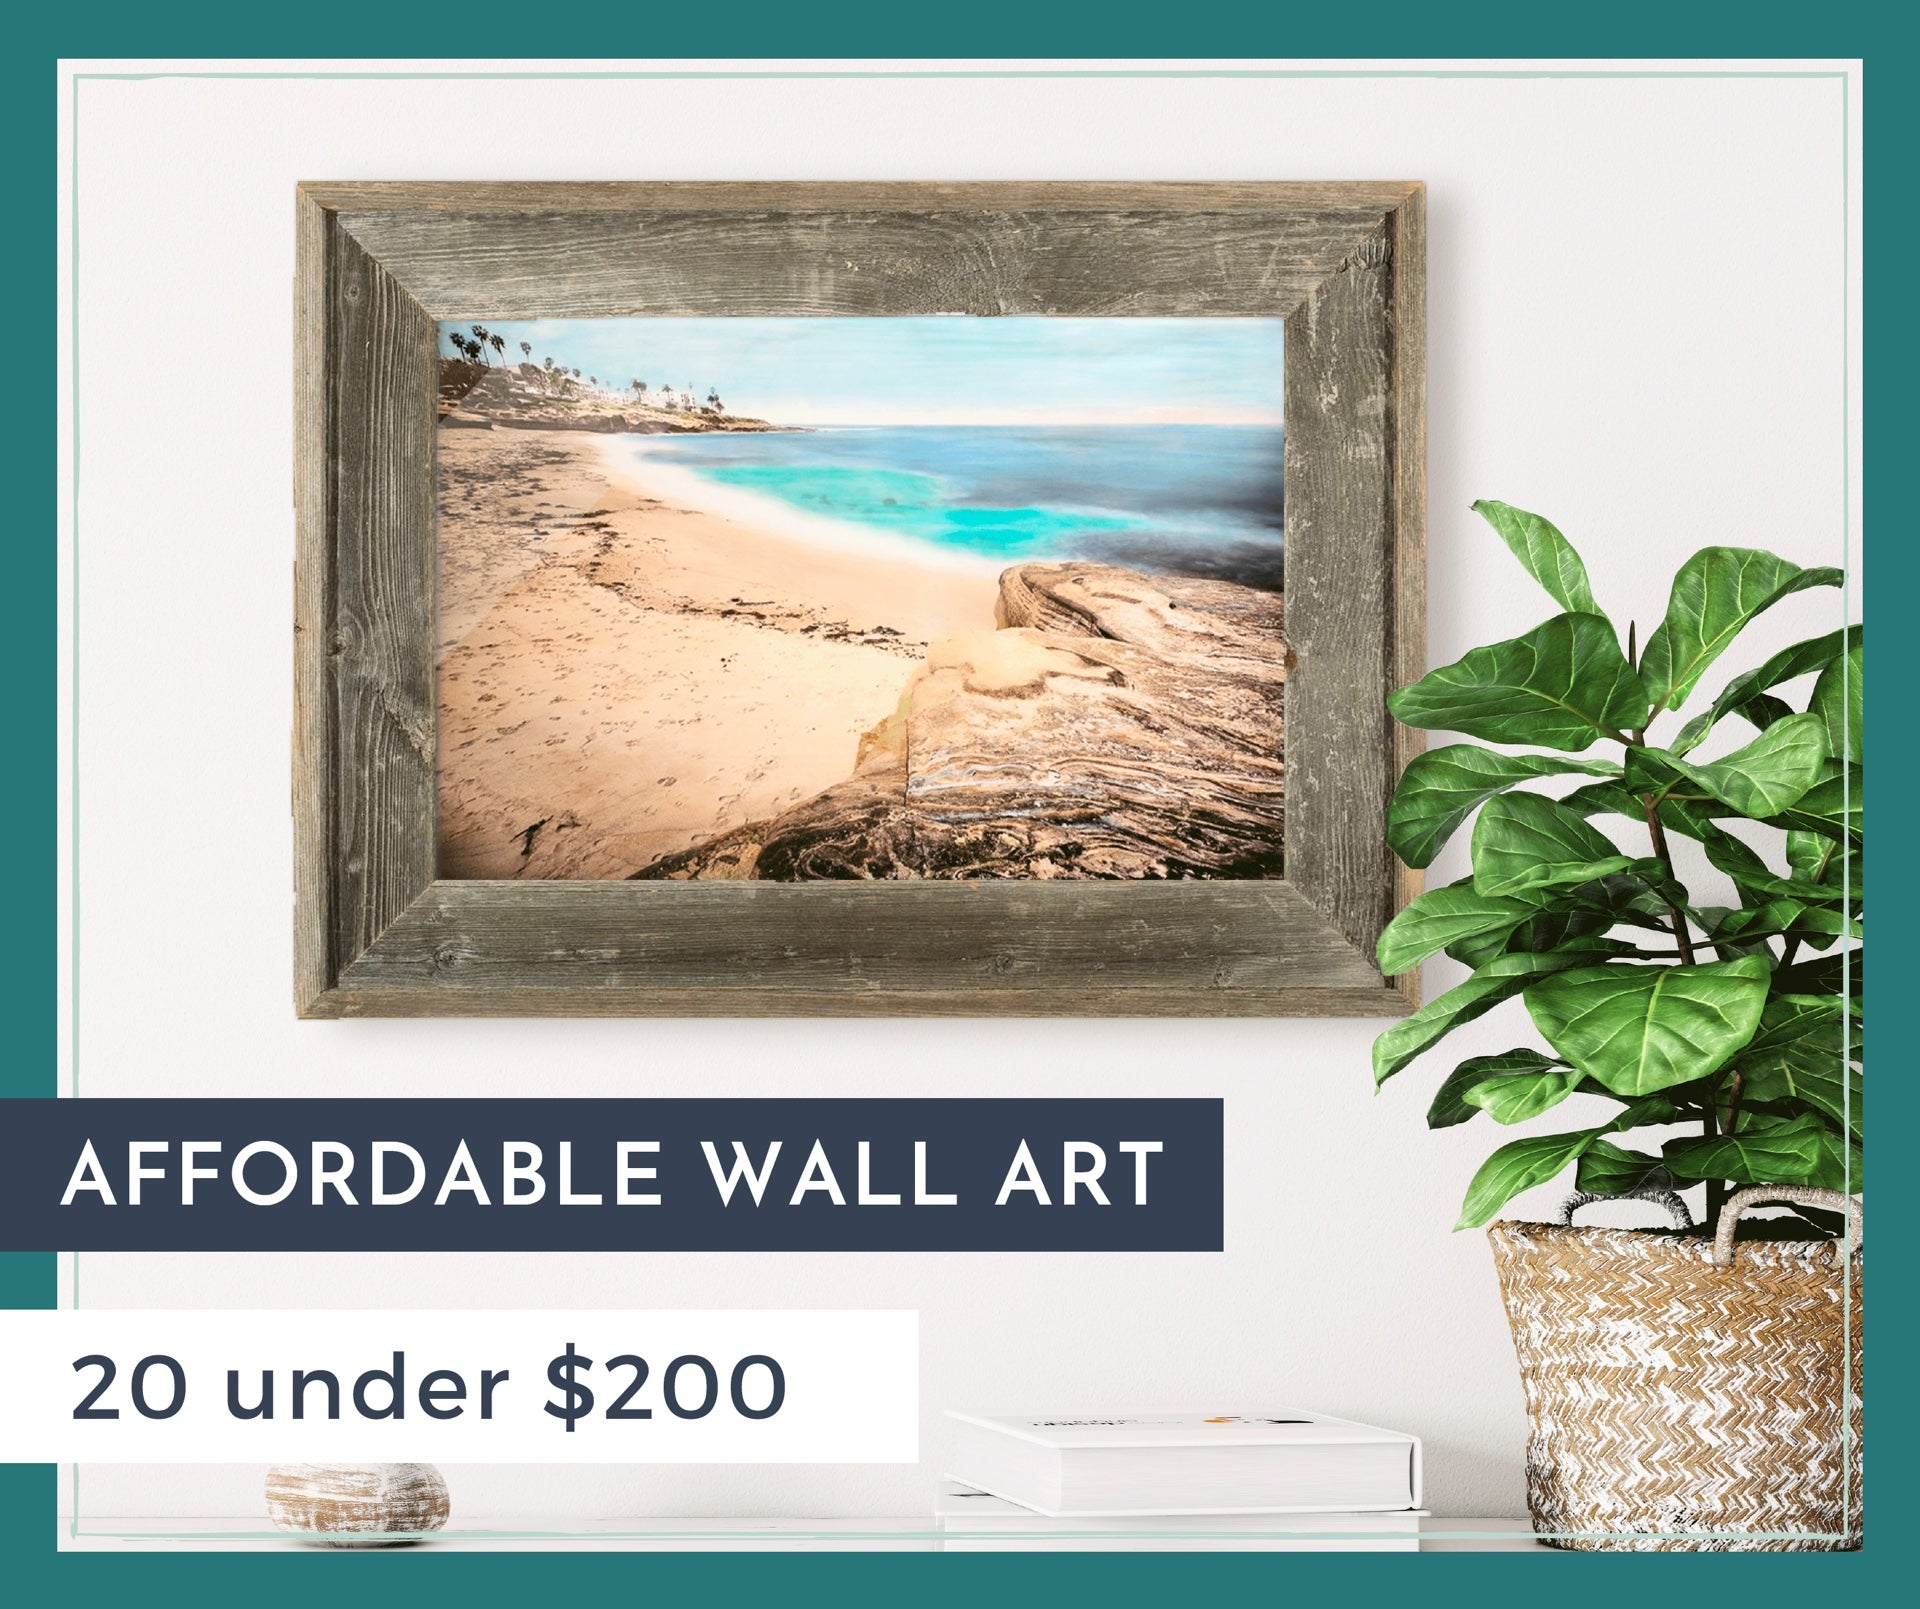 Affordable Wall Art Roundup: 20 Under $200